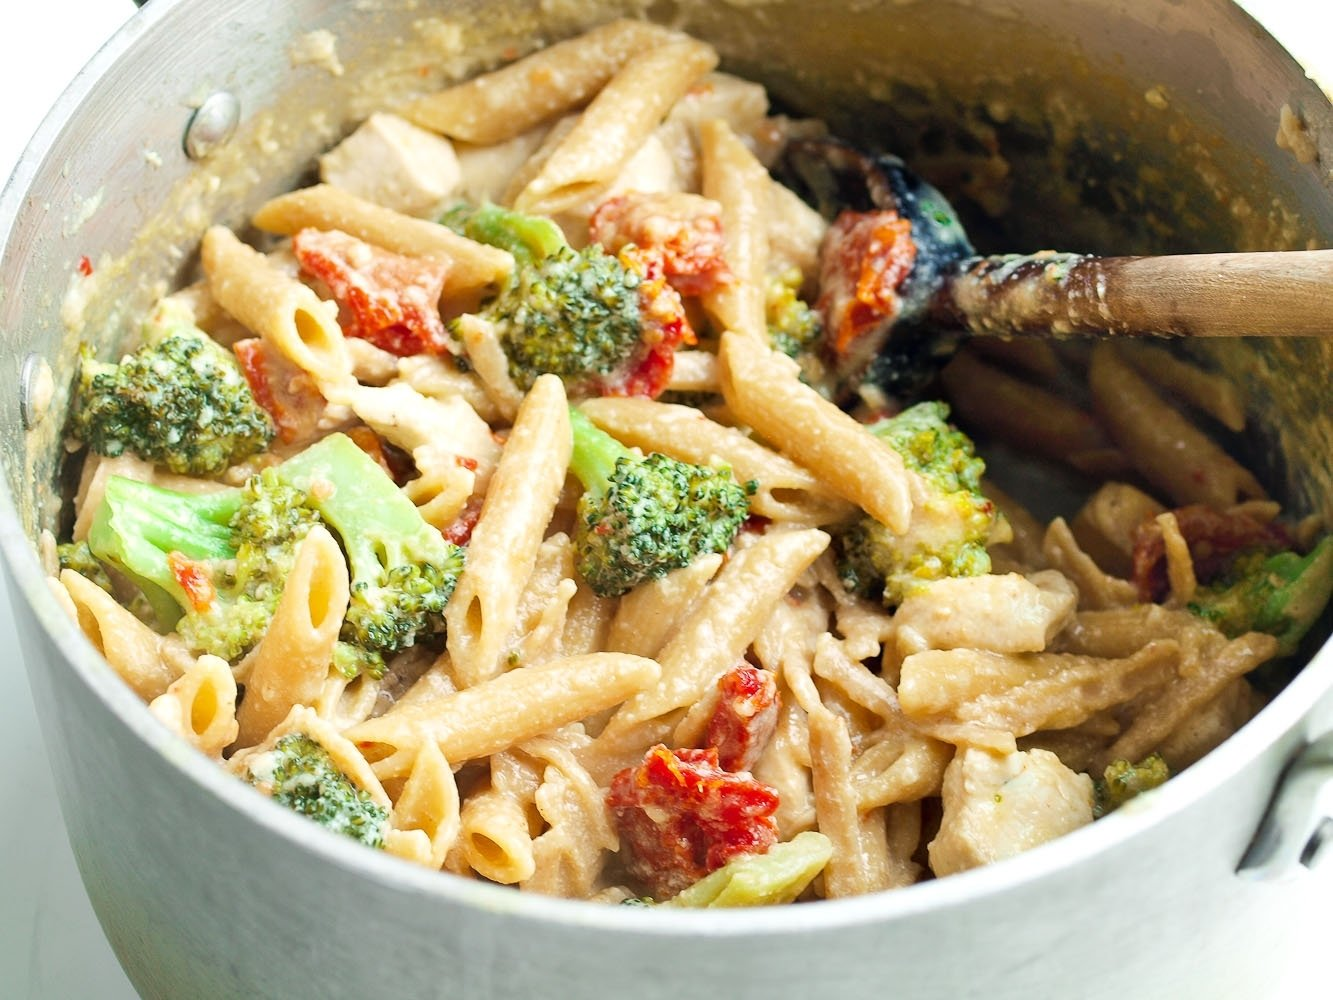 10 Spectacular Healthy Dinner Ideas For One tangy one pot chicken and veggie pasta dinner healthy ideas for kids 5 2020